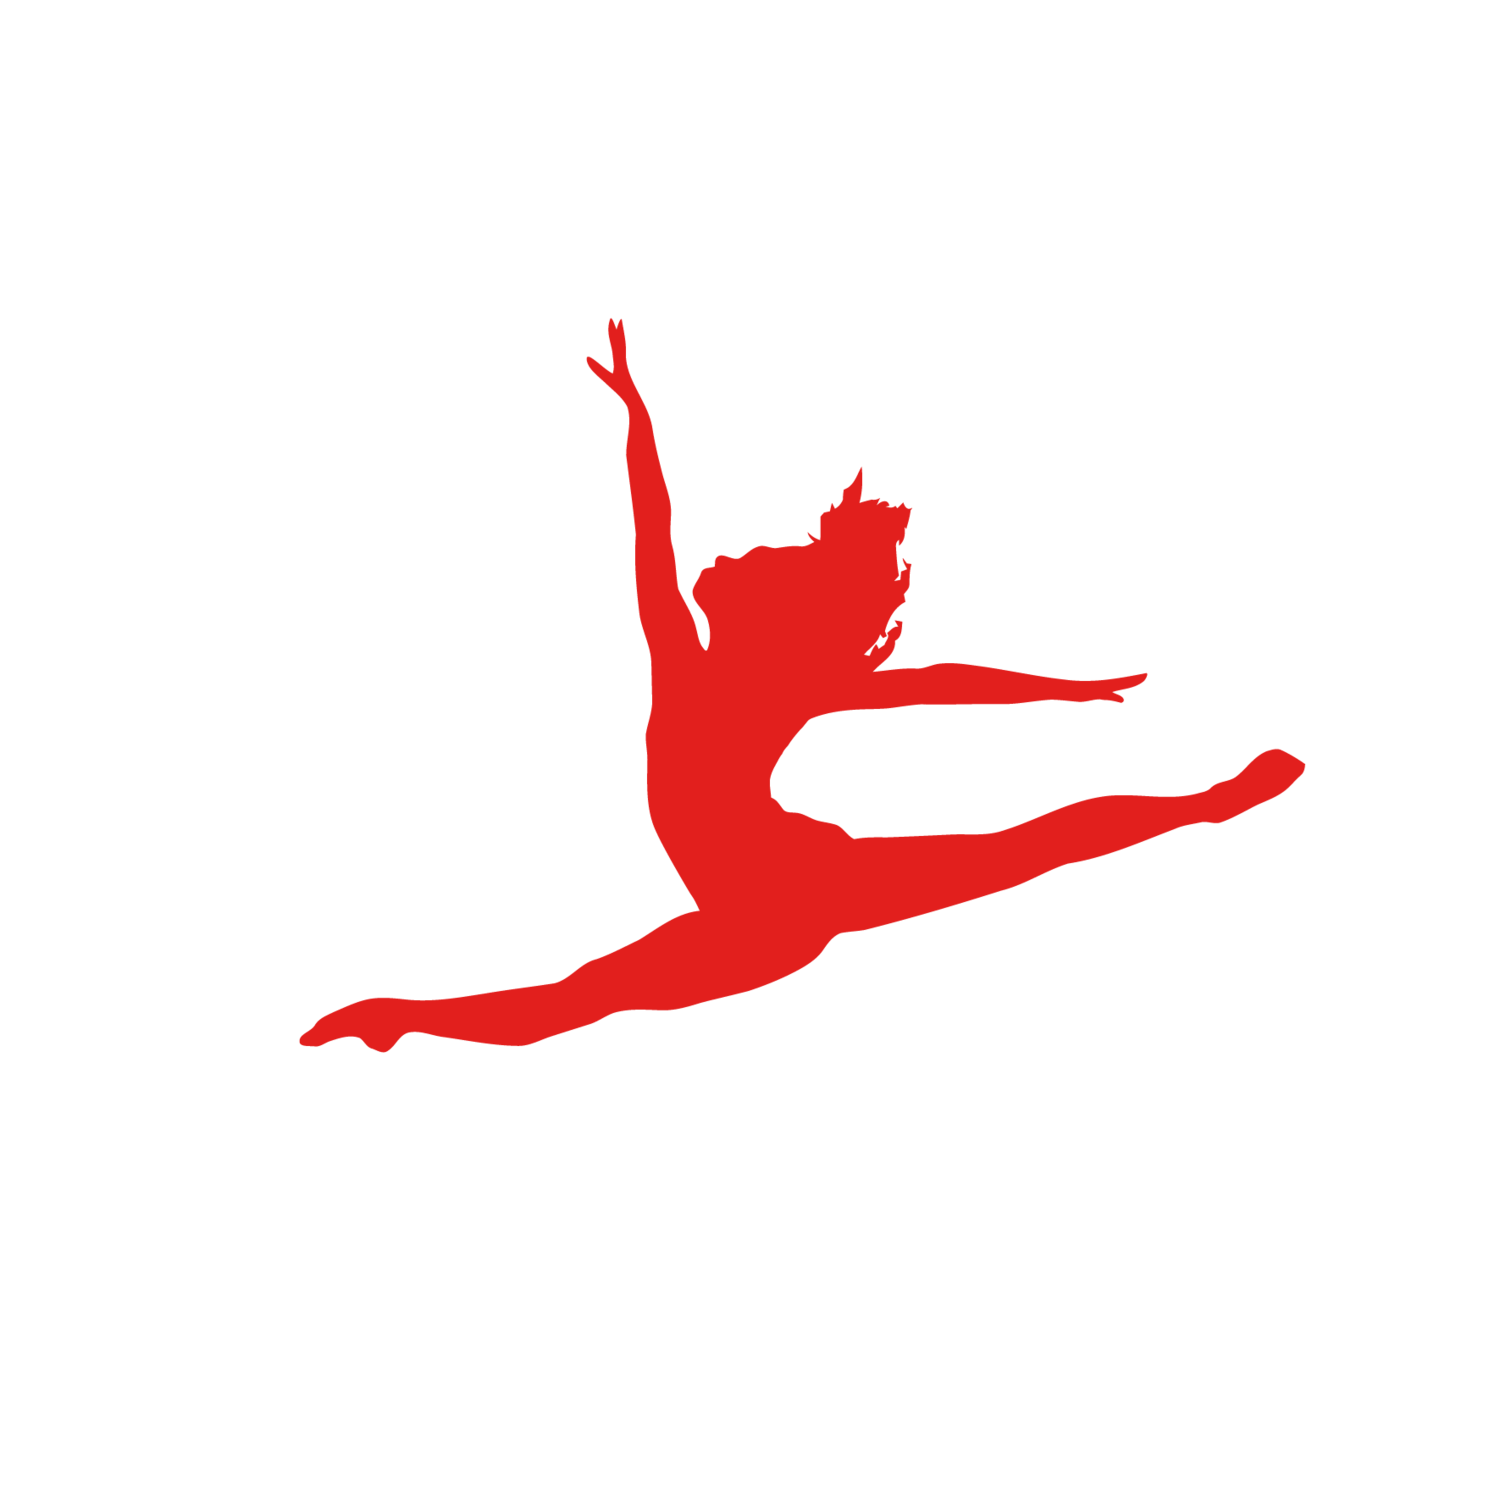 Heather's Dance Company